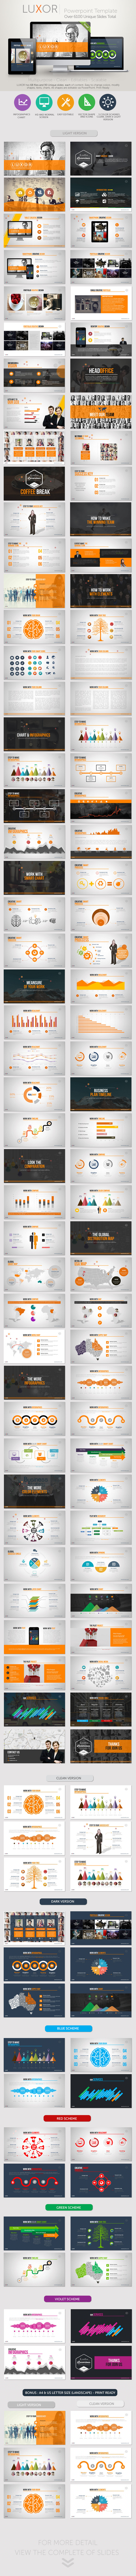 Luxor PowerPoint Presentation Template